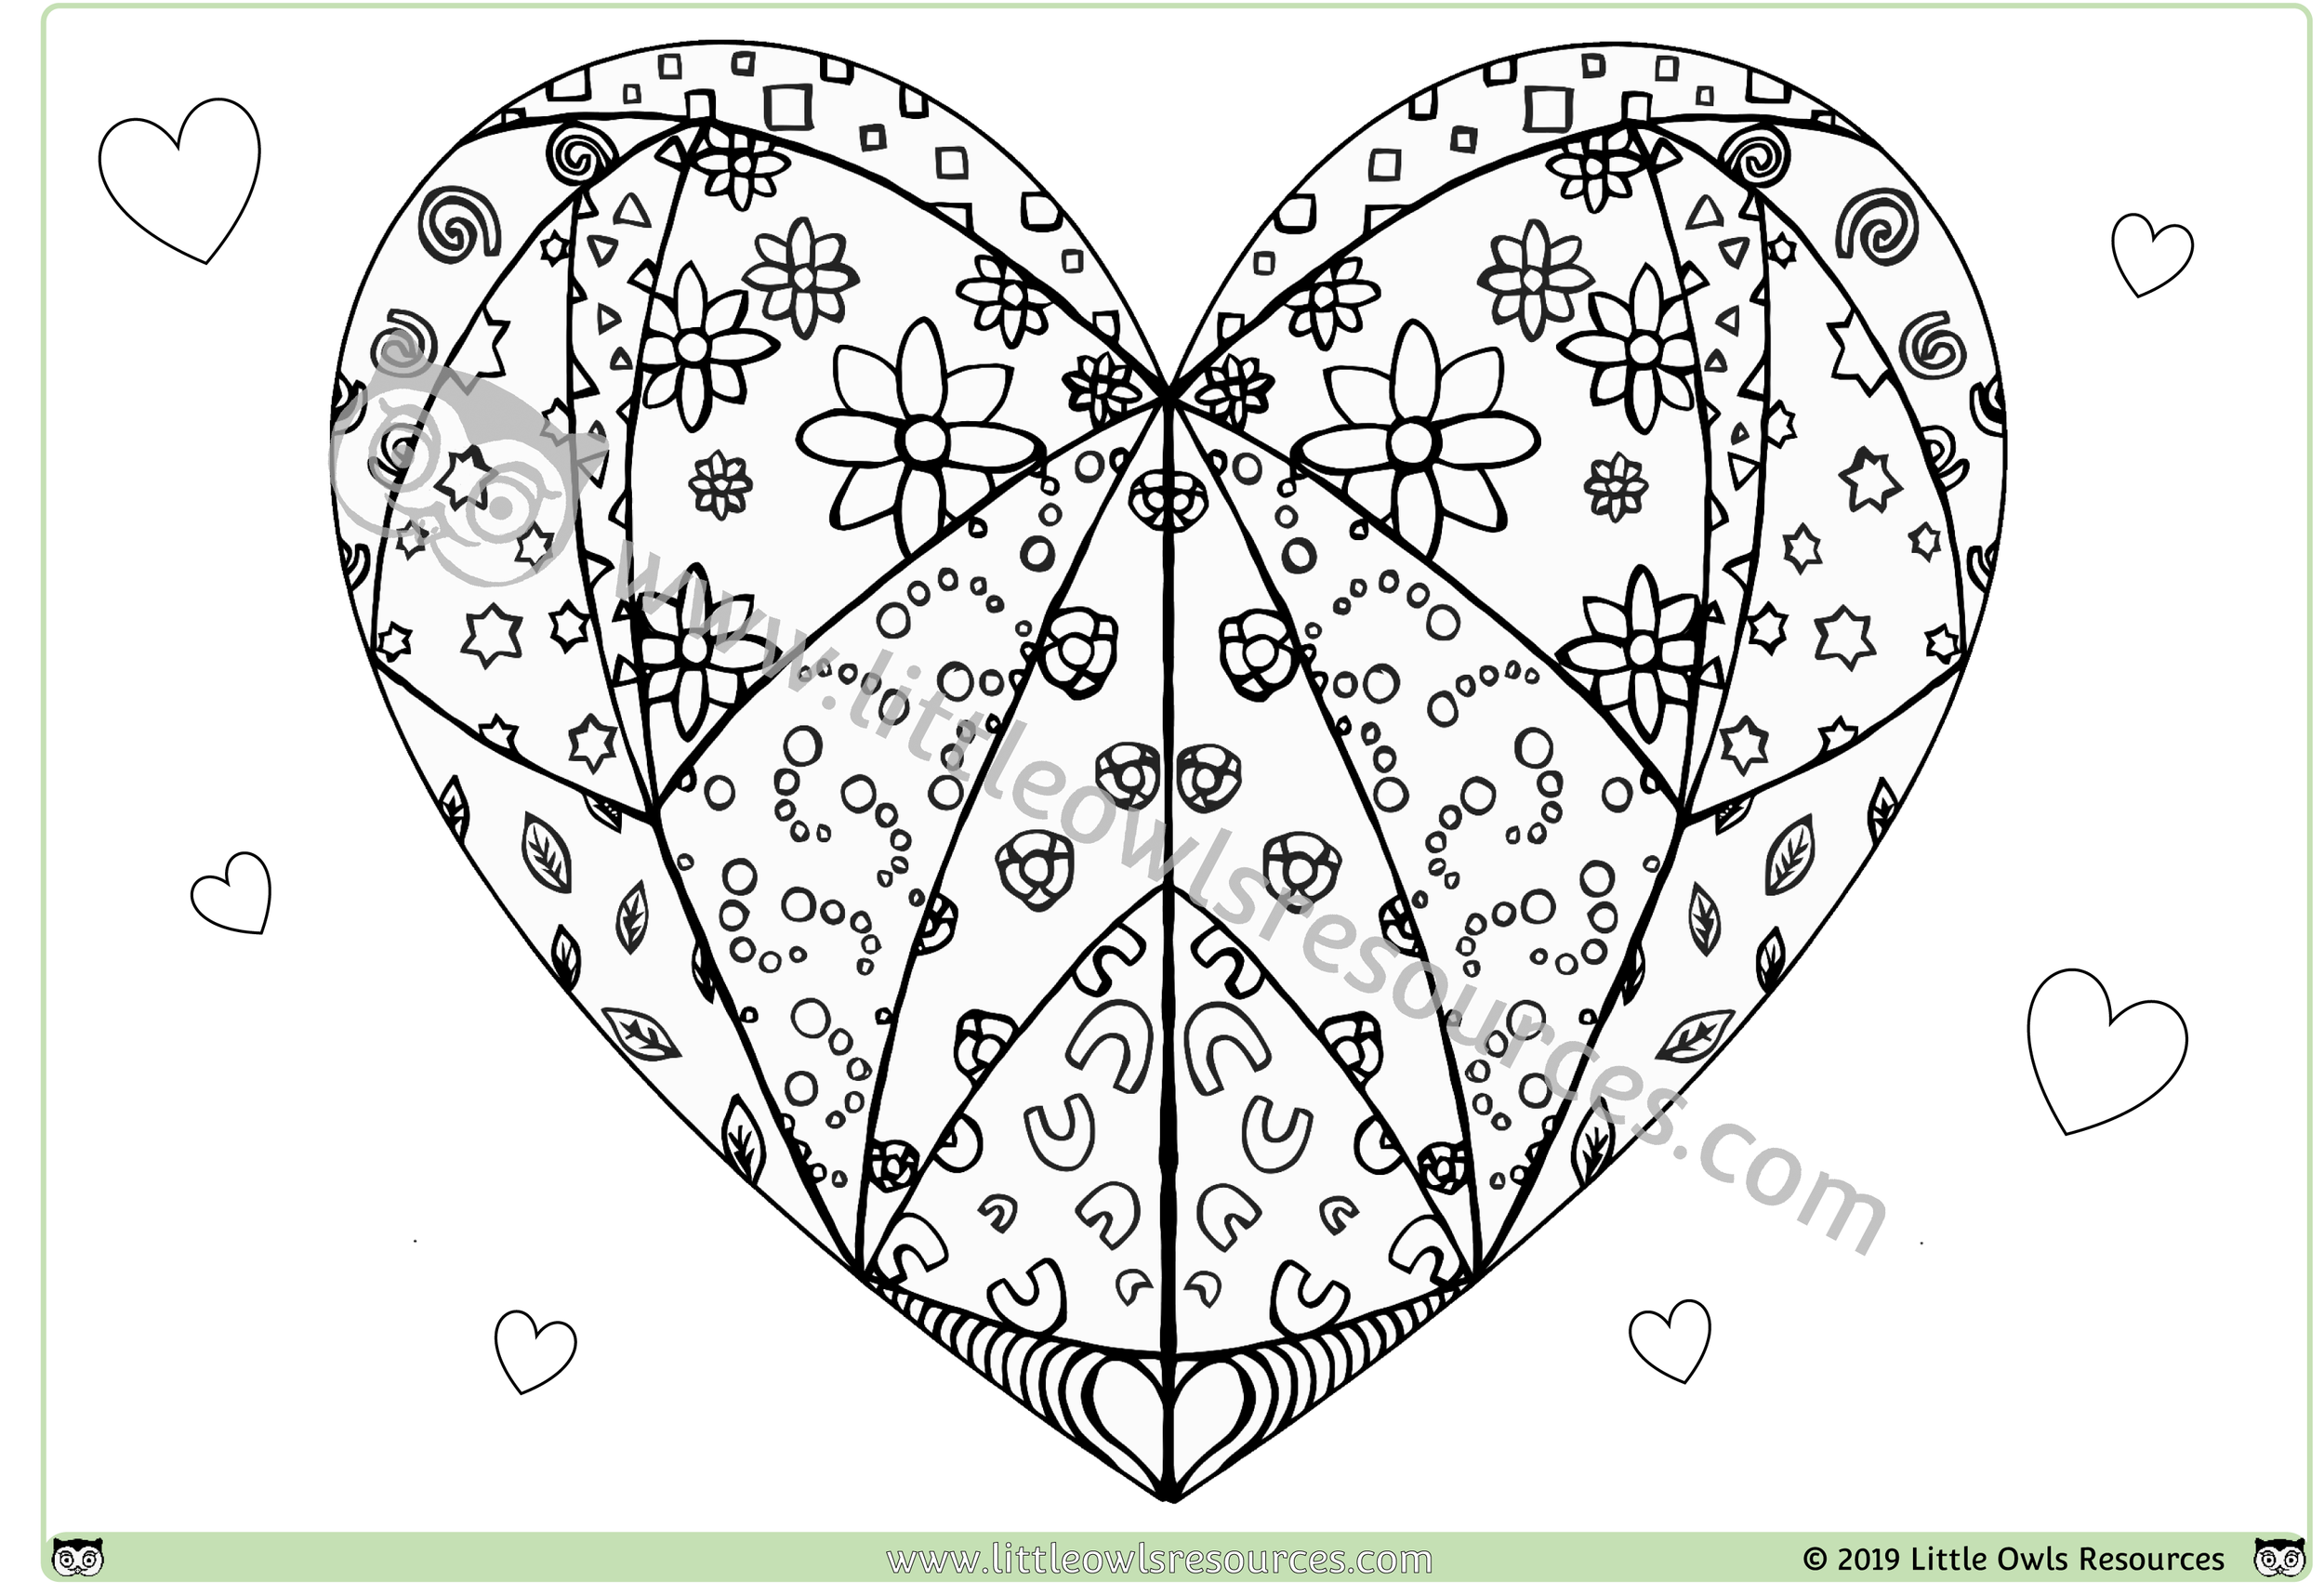 Heart Mindfulness Colouring -